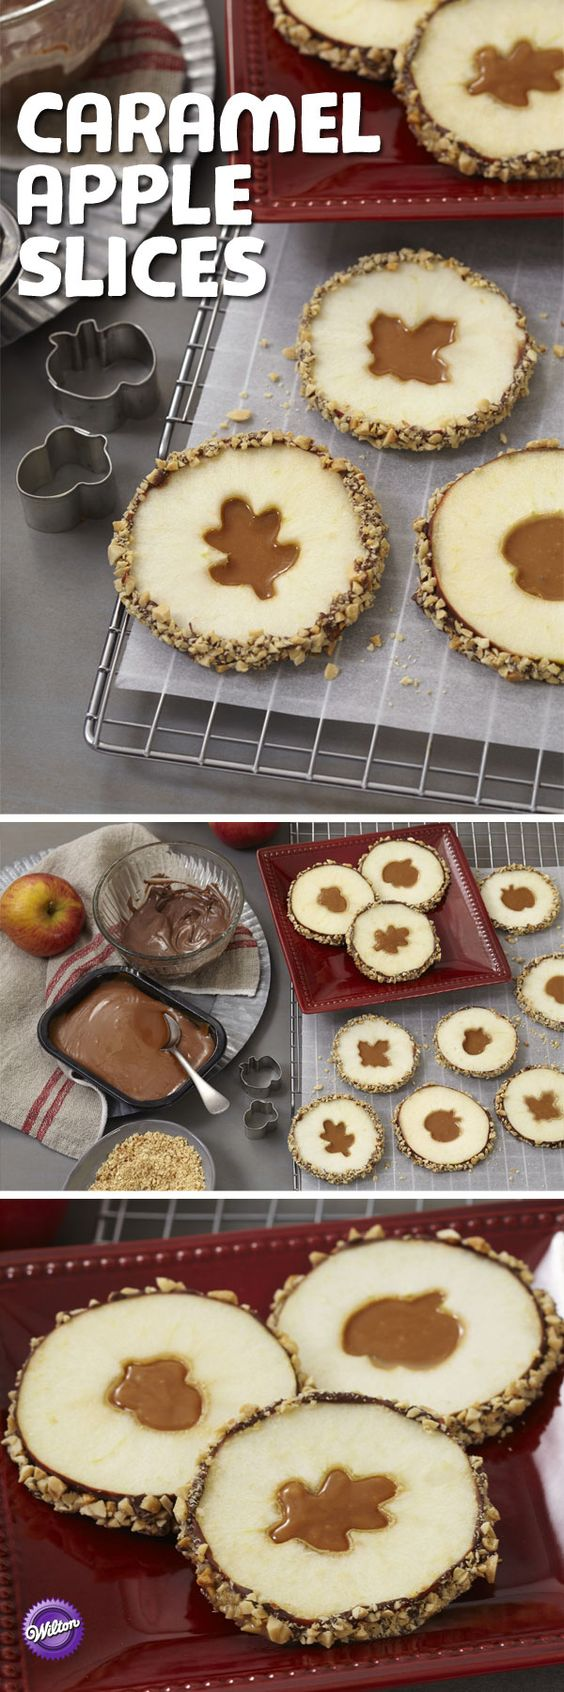 Thanksgiving Desserts: Candy Caramel Apple Slices